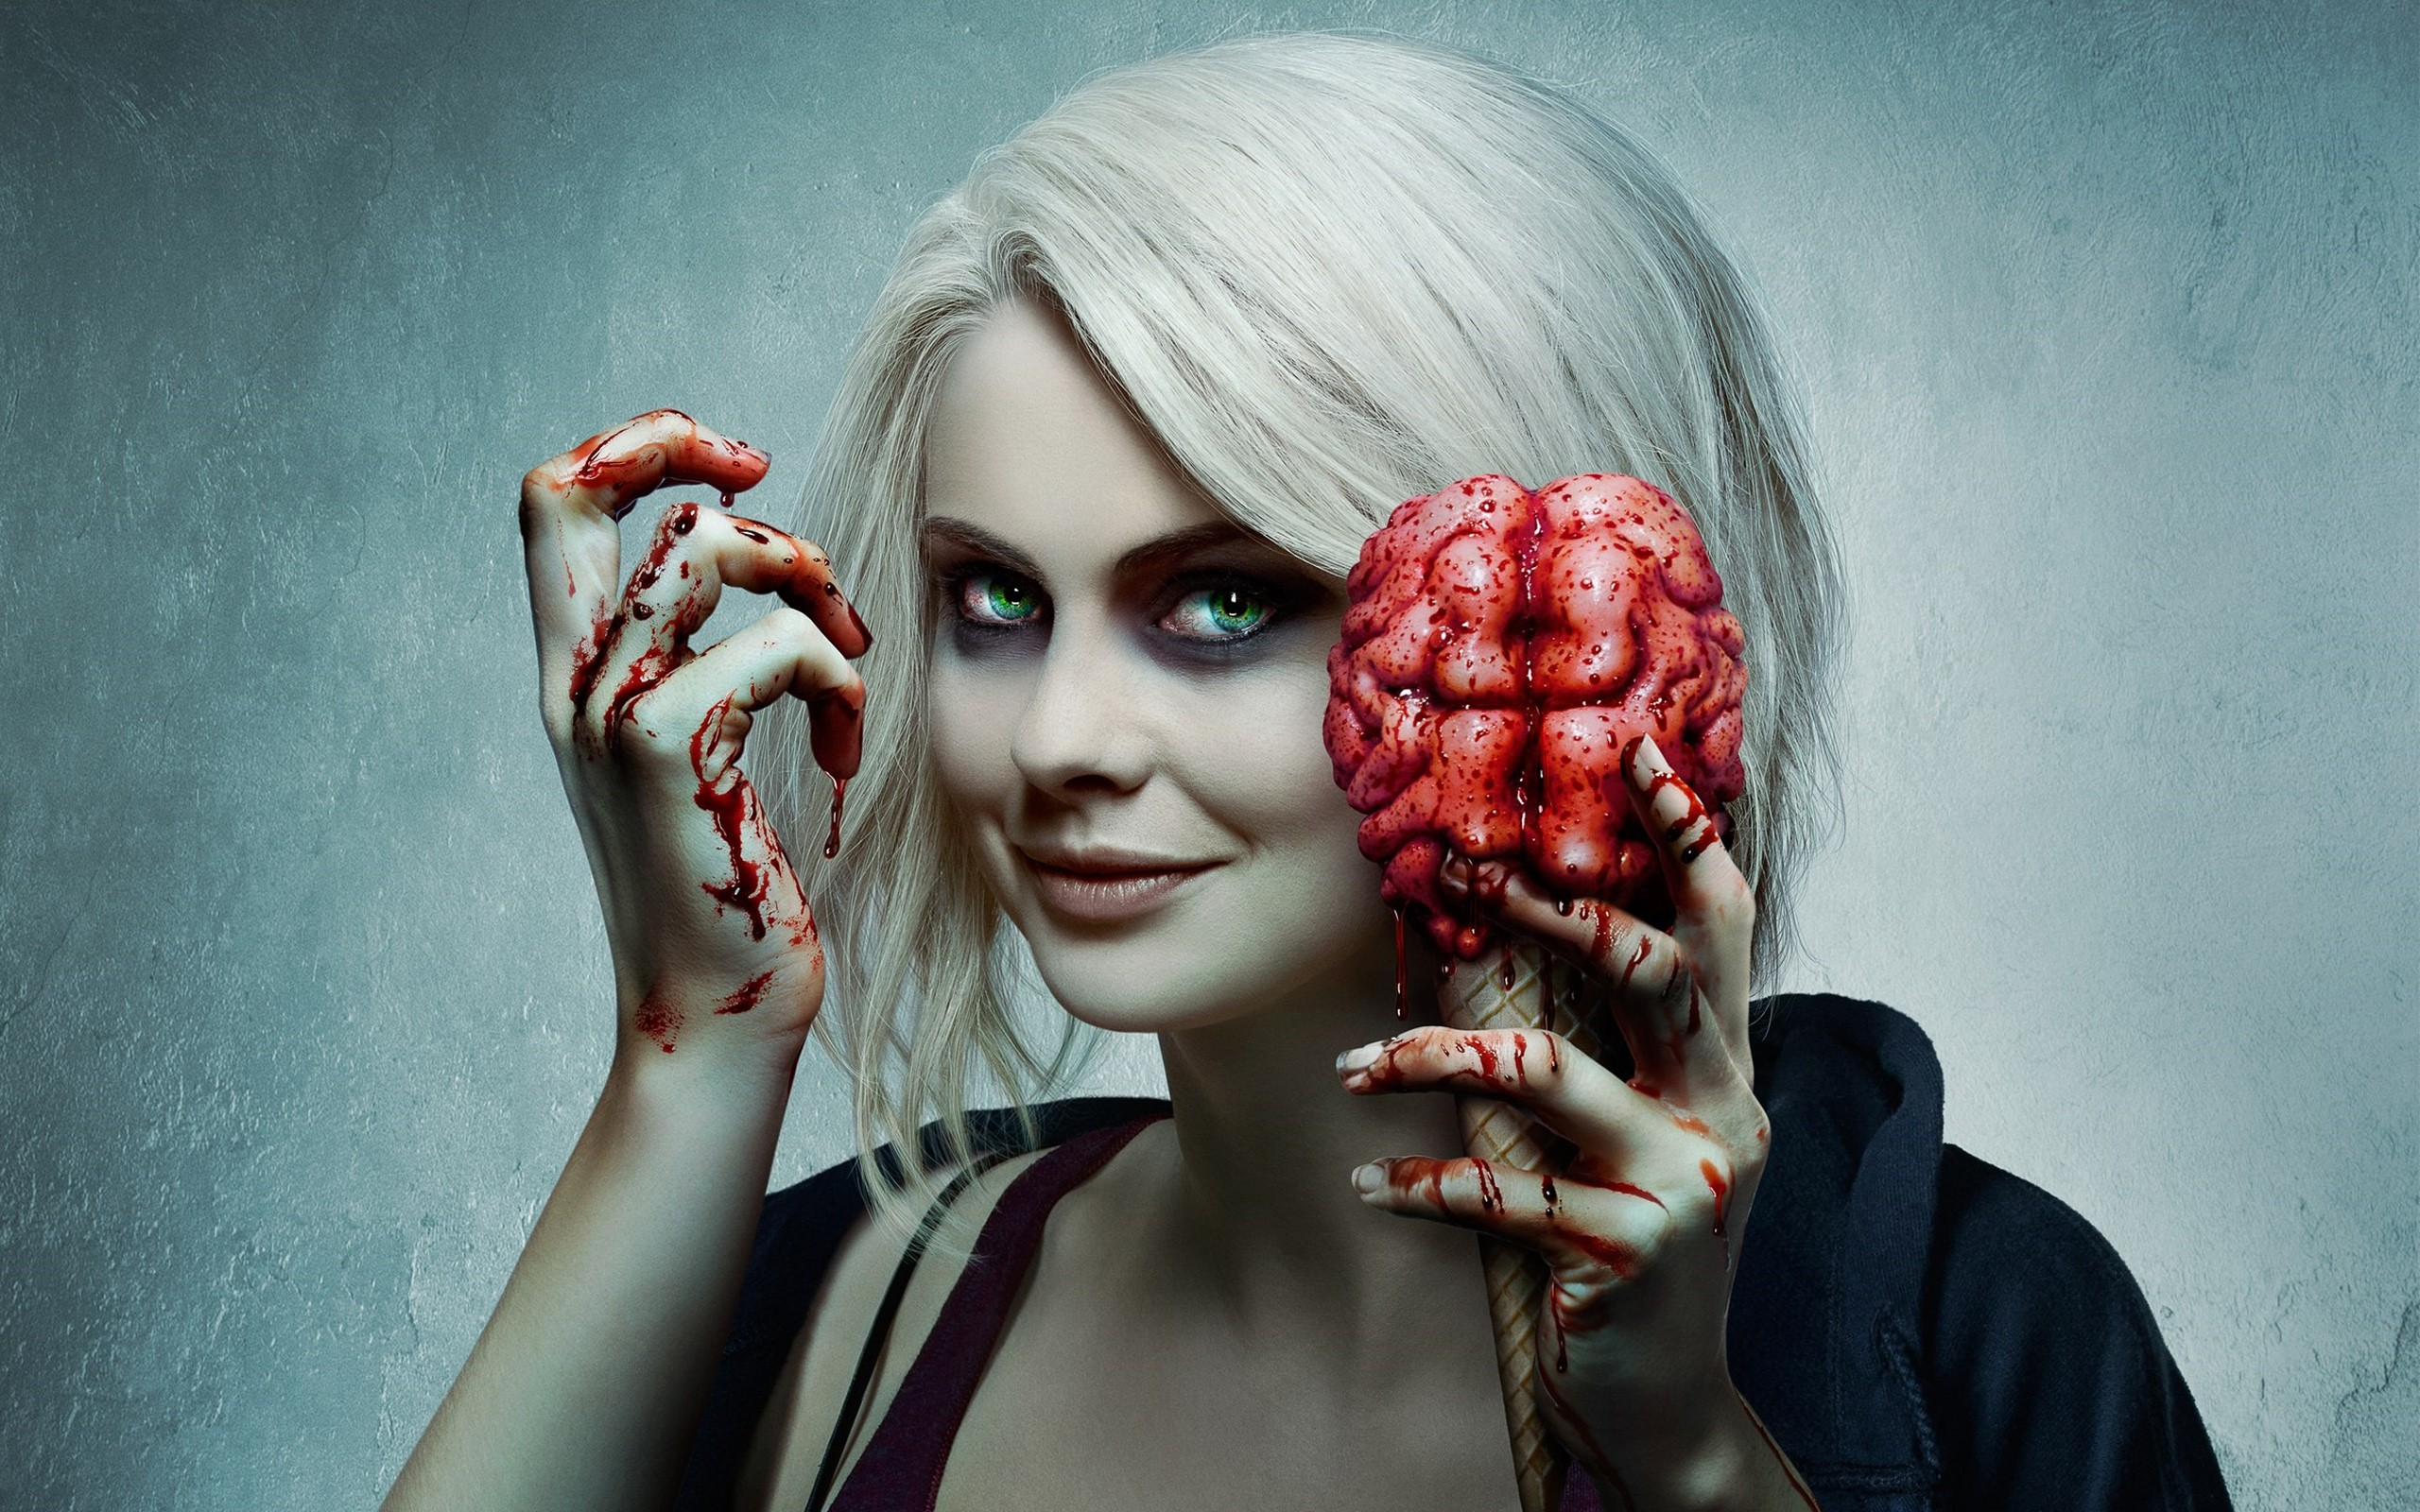 Falling Skies Wallpaper 1920x1080 Izombie Season 2 Hd Tv Shows 4k Wallpapers Images